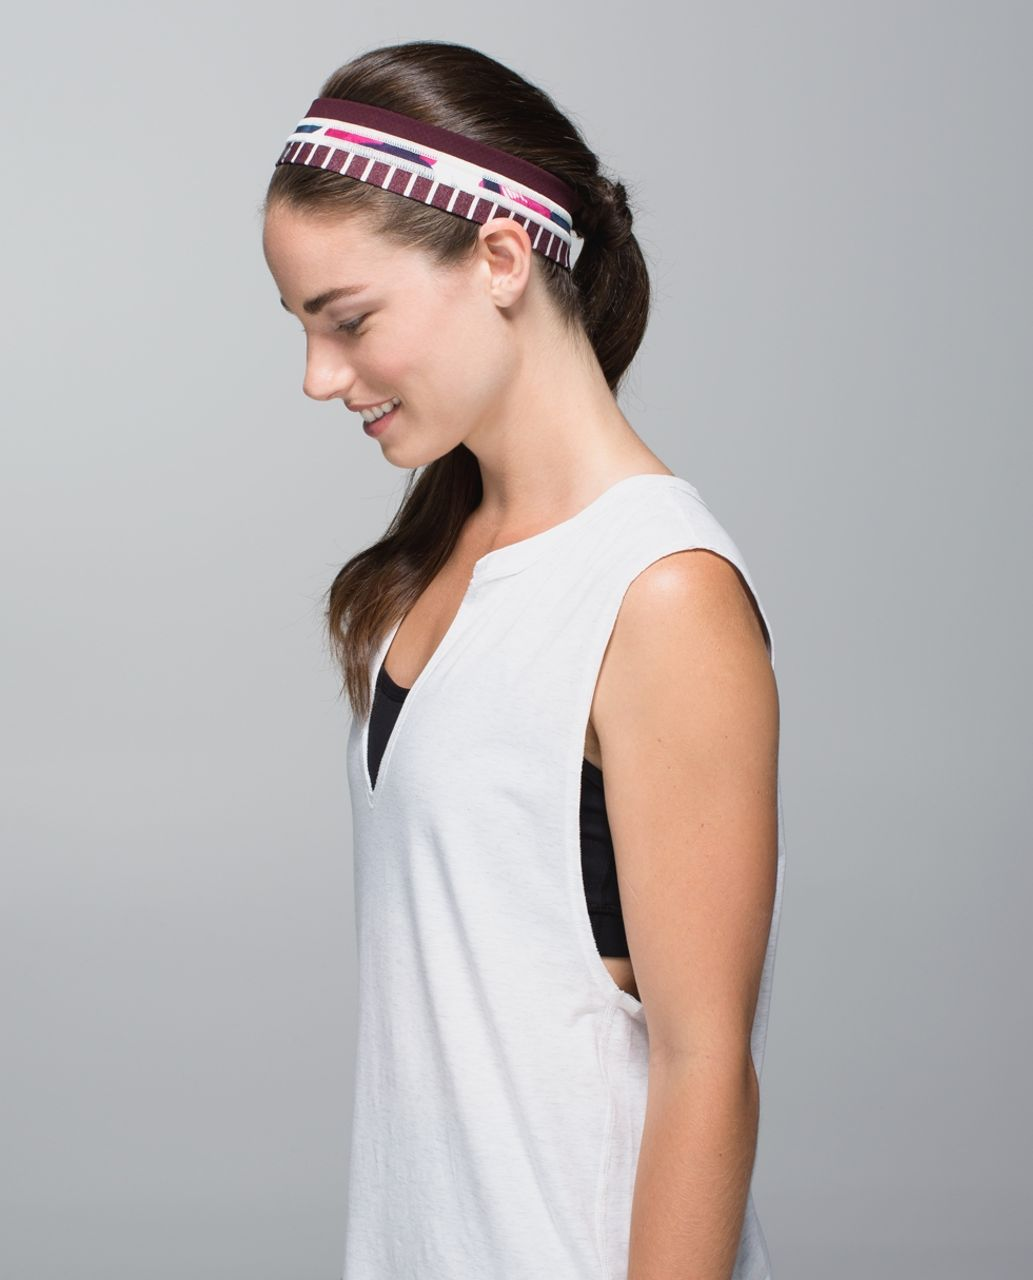 Lululemon Fly Away Tamer Headband *Quilt - Diamond Dot Bordeaux Drama Black / Inky Floral Ghost Inkwell Bumble Berry / West2east Stripe Heathered Bordeaux Drama